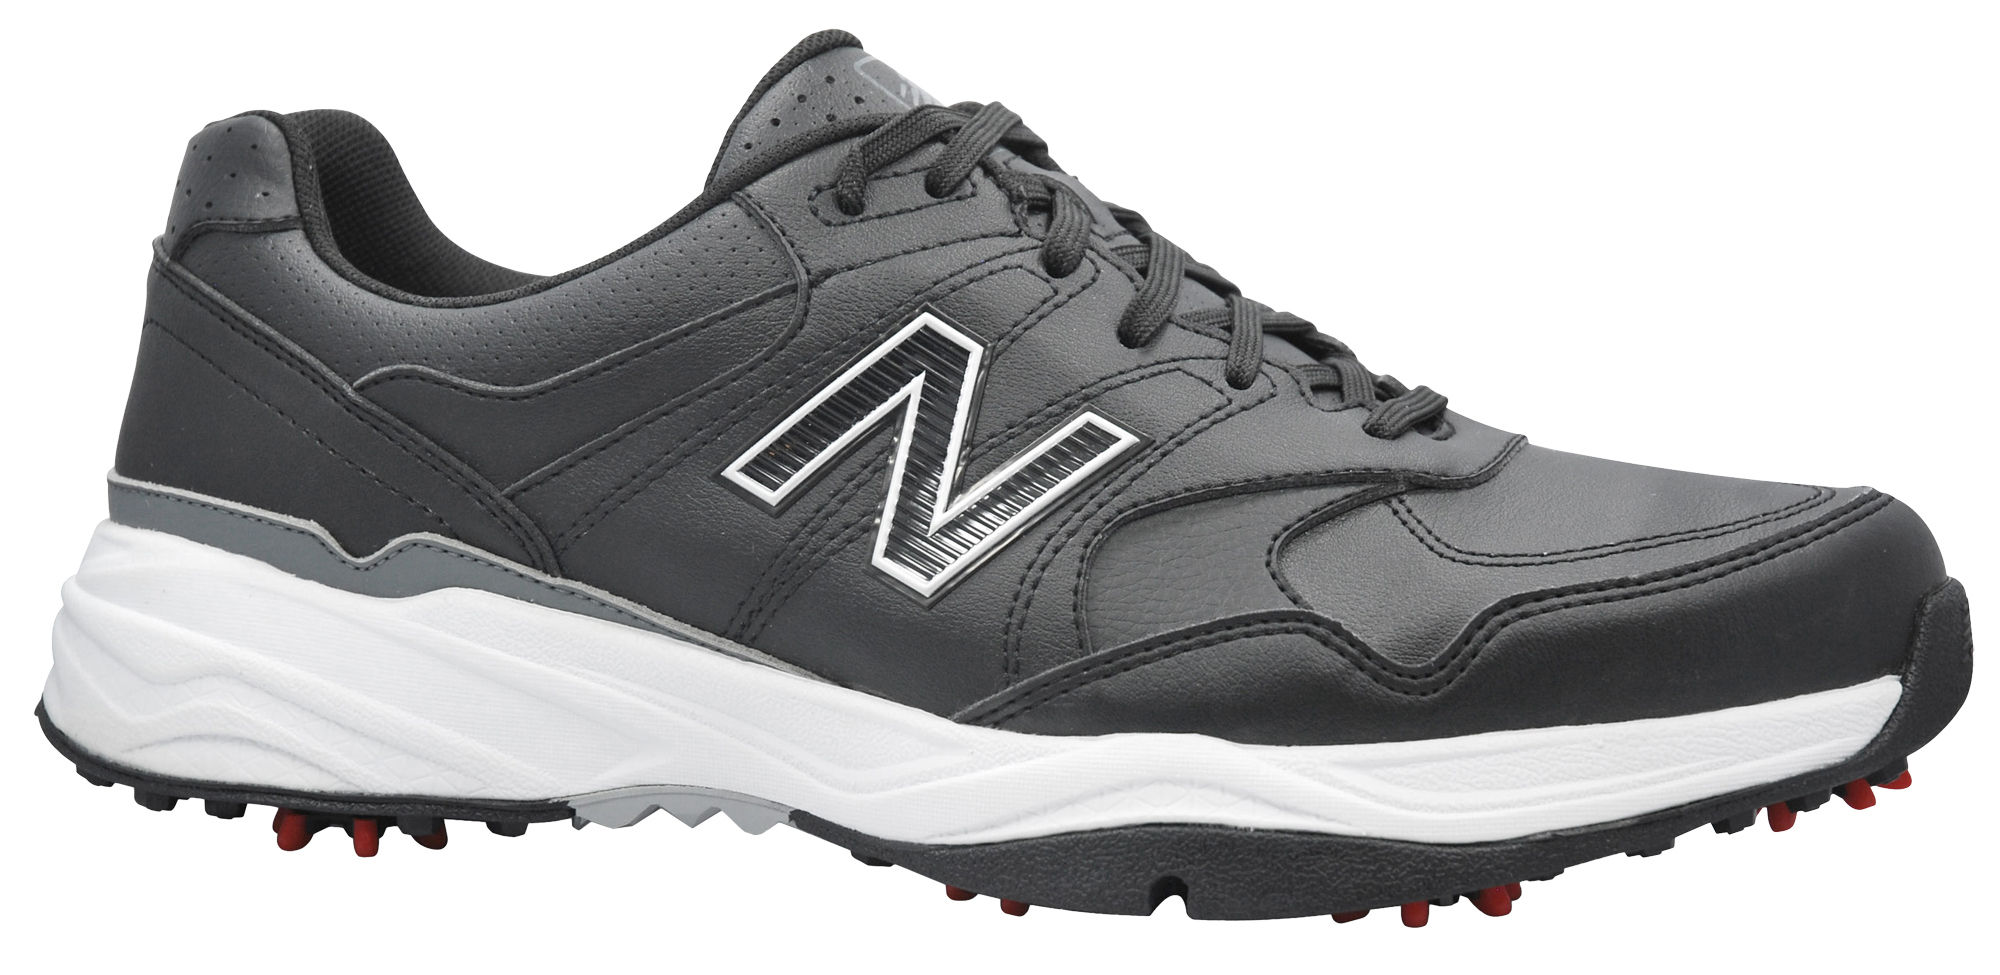 New Balance Golf Nbg Mens Golf Shoes